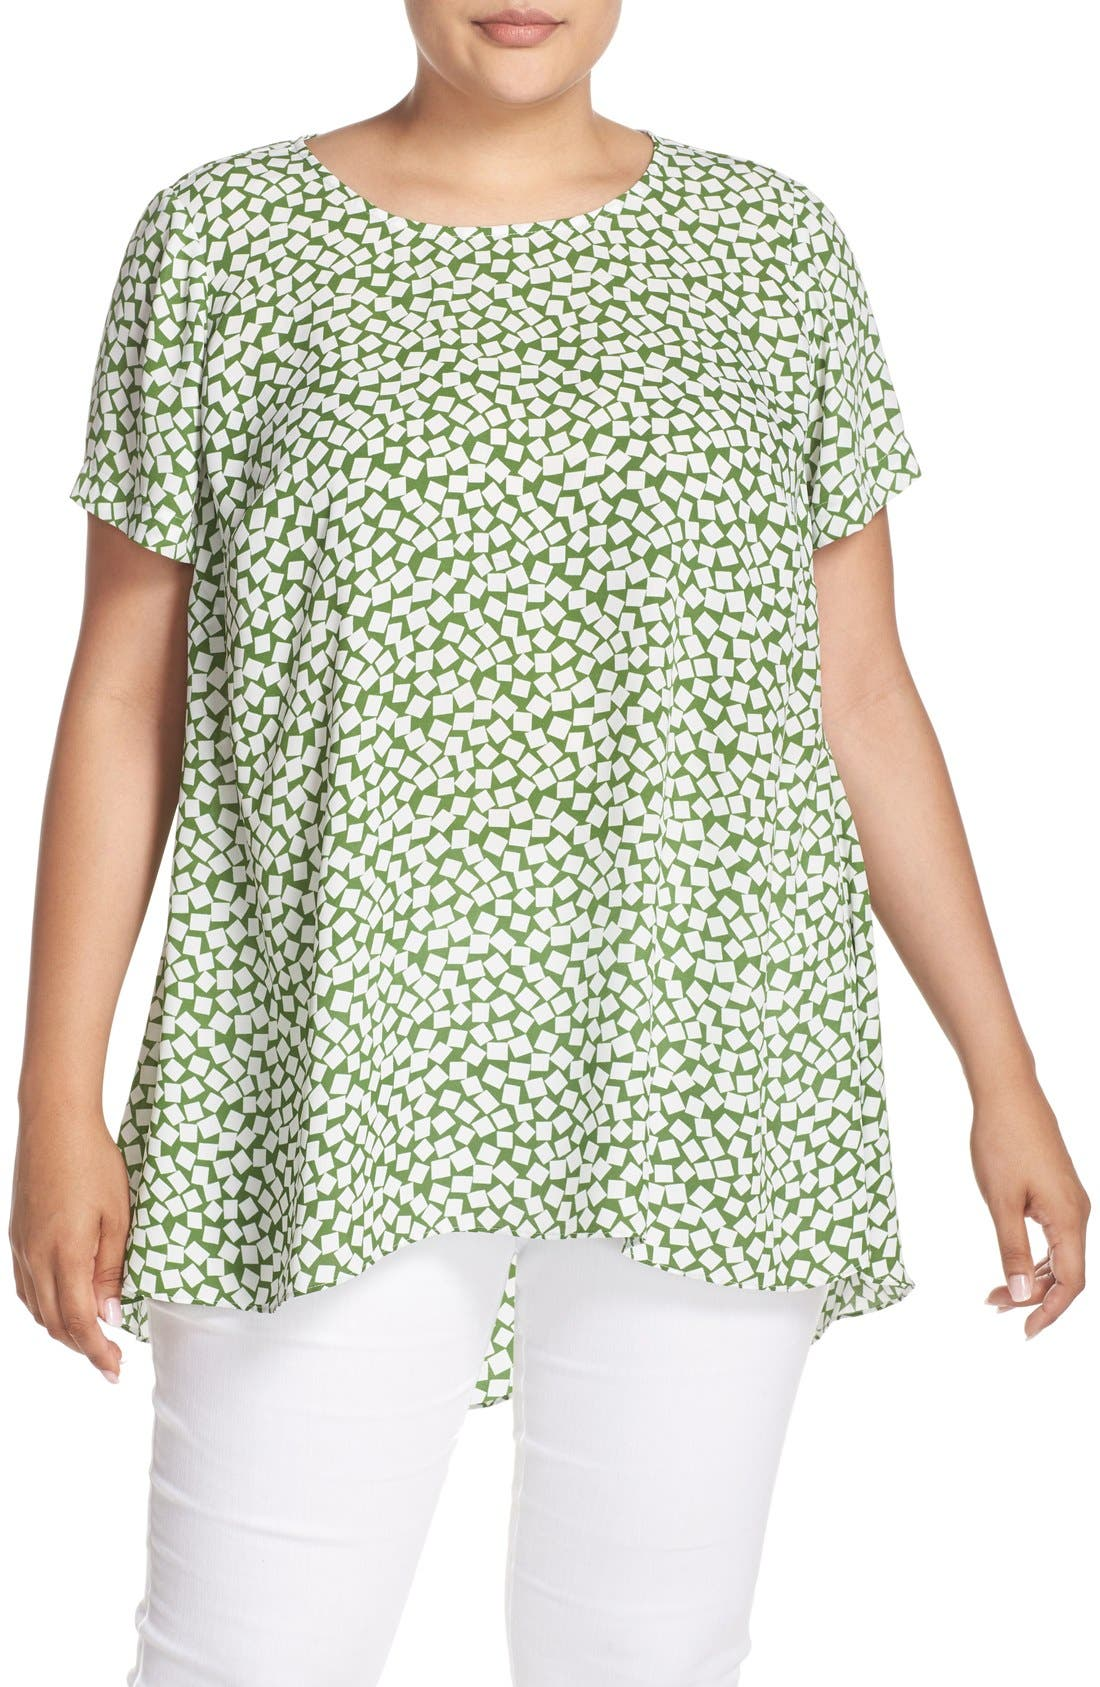 Alternate Image 1 Selected - Vince Camuto 'Falling Cubes' Print Short Sleeve High/Low Blouse (Plus Size)